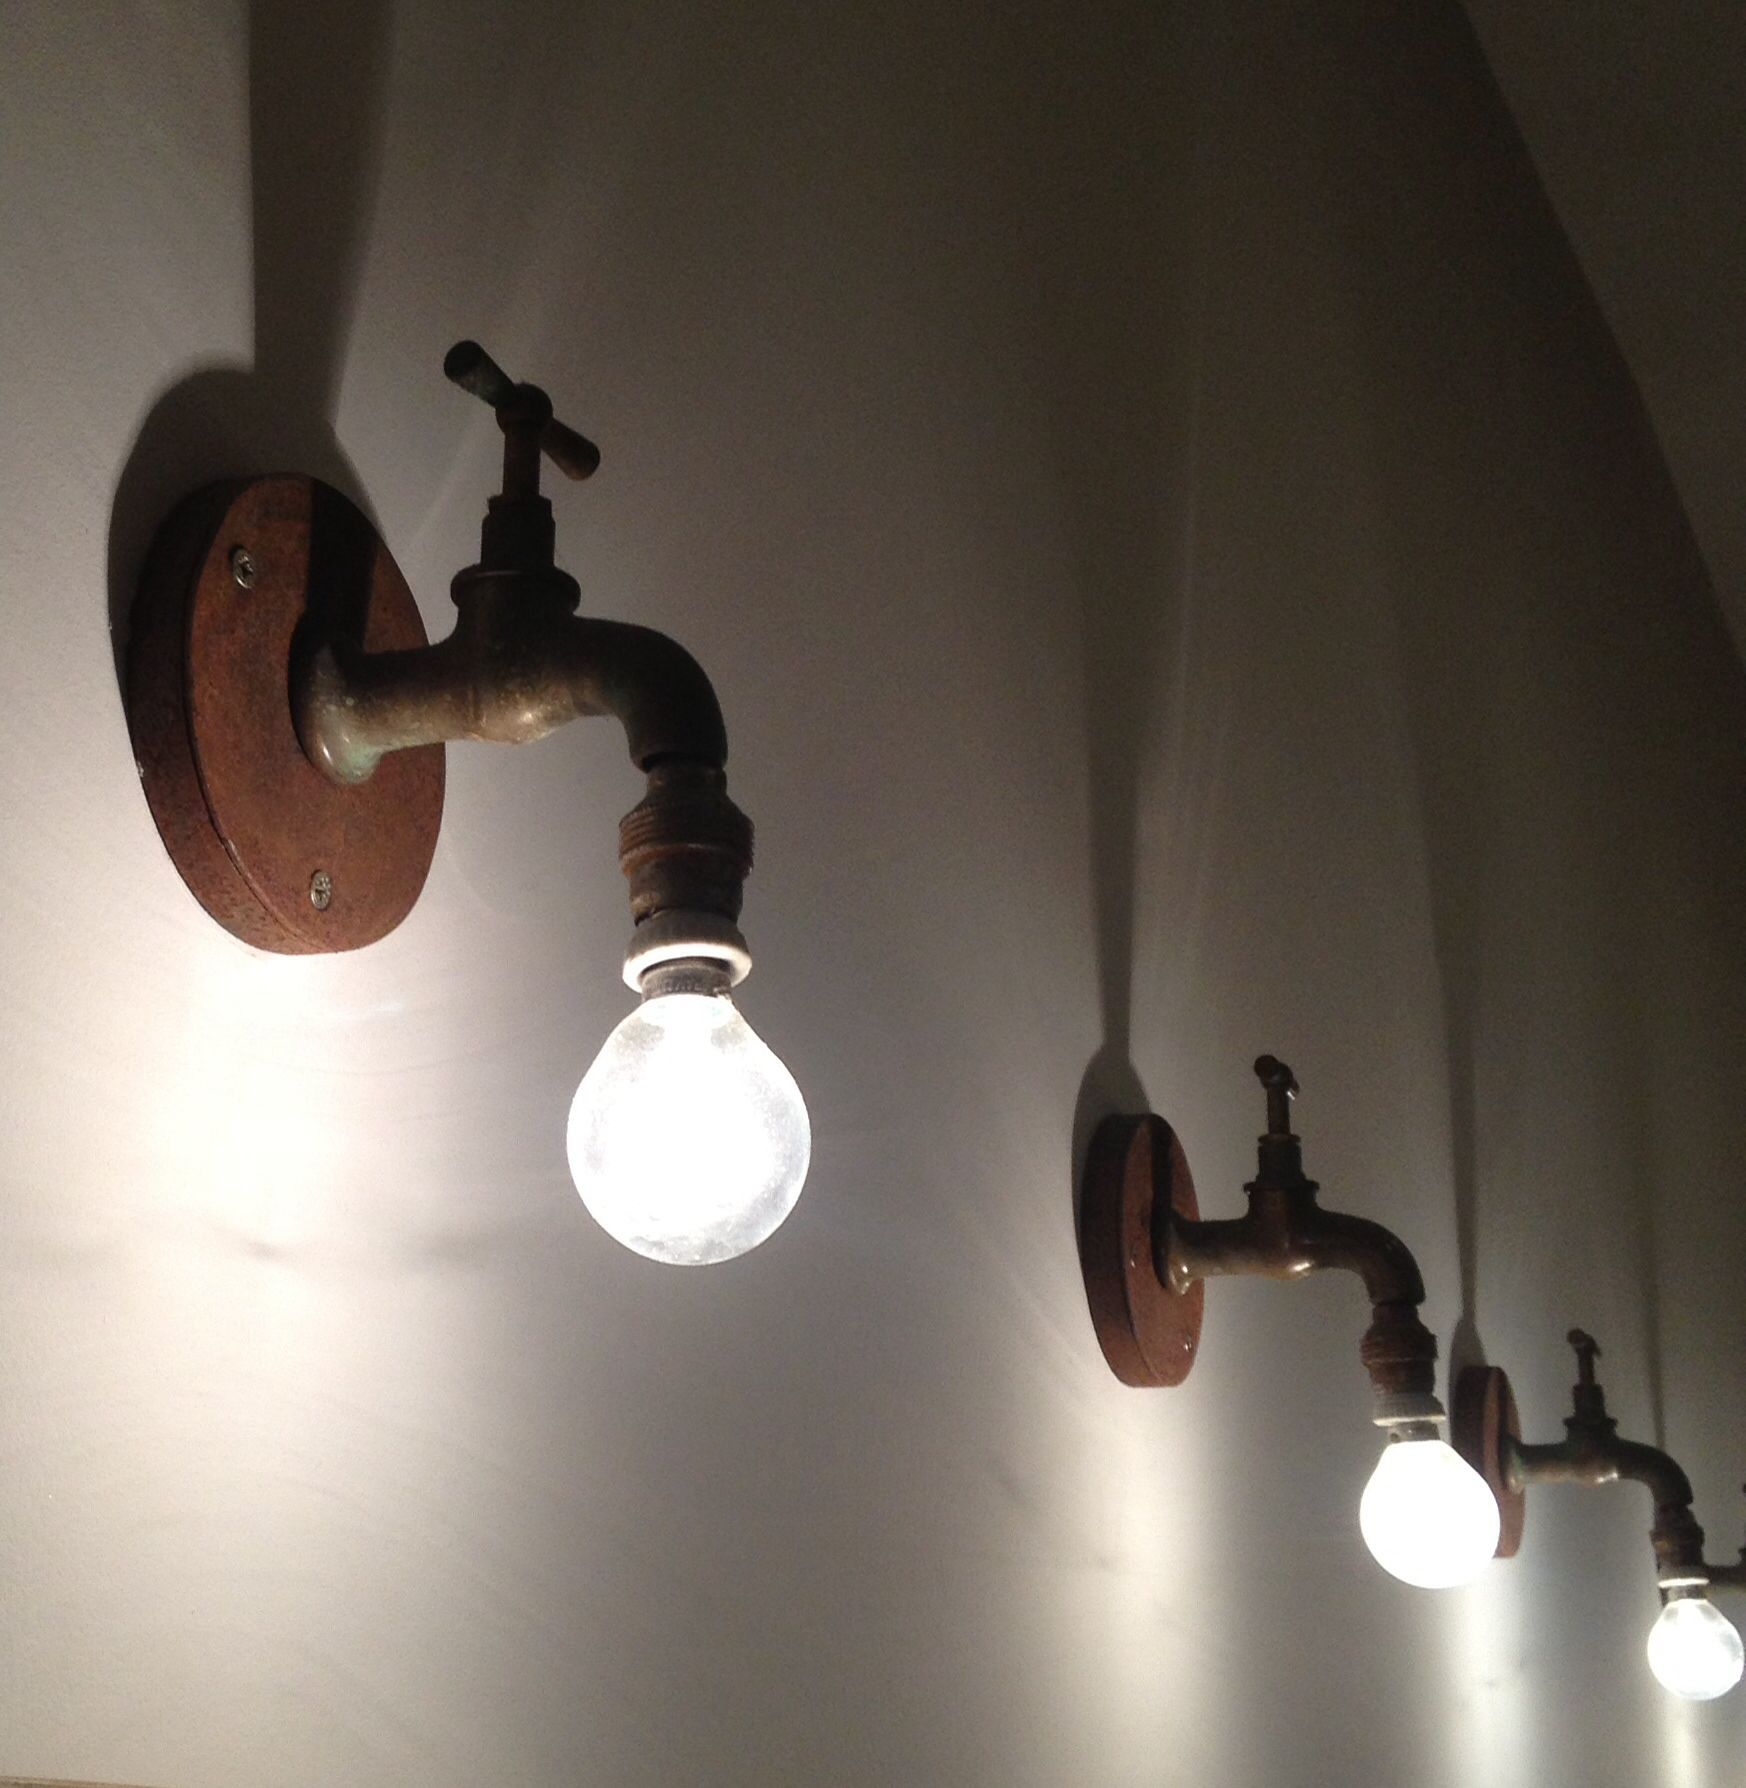 old industrial lighting. Original Lighting Made With Old Taps. Industrial